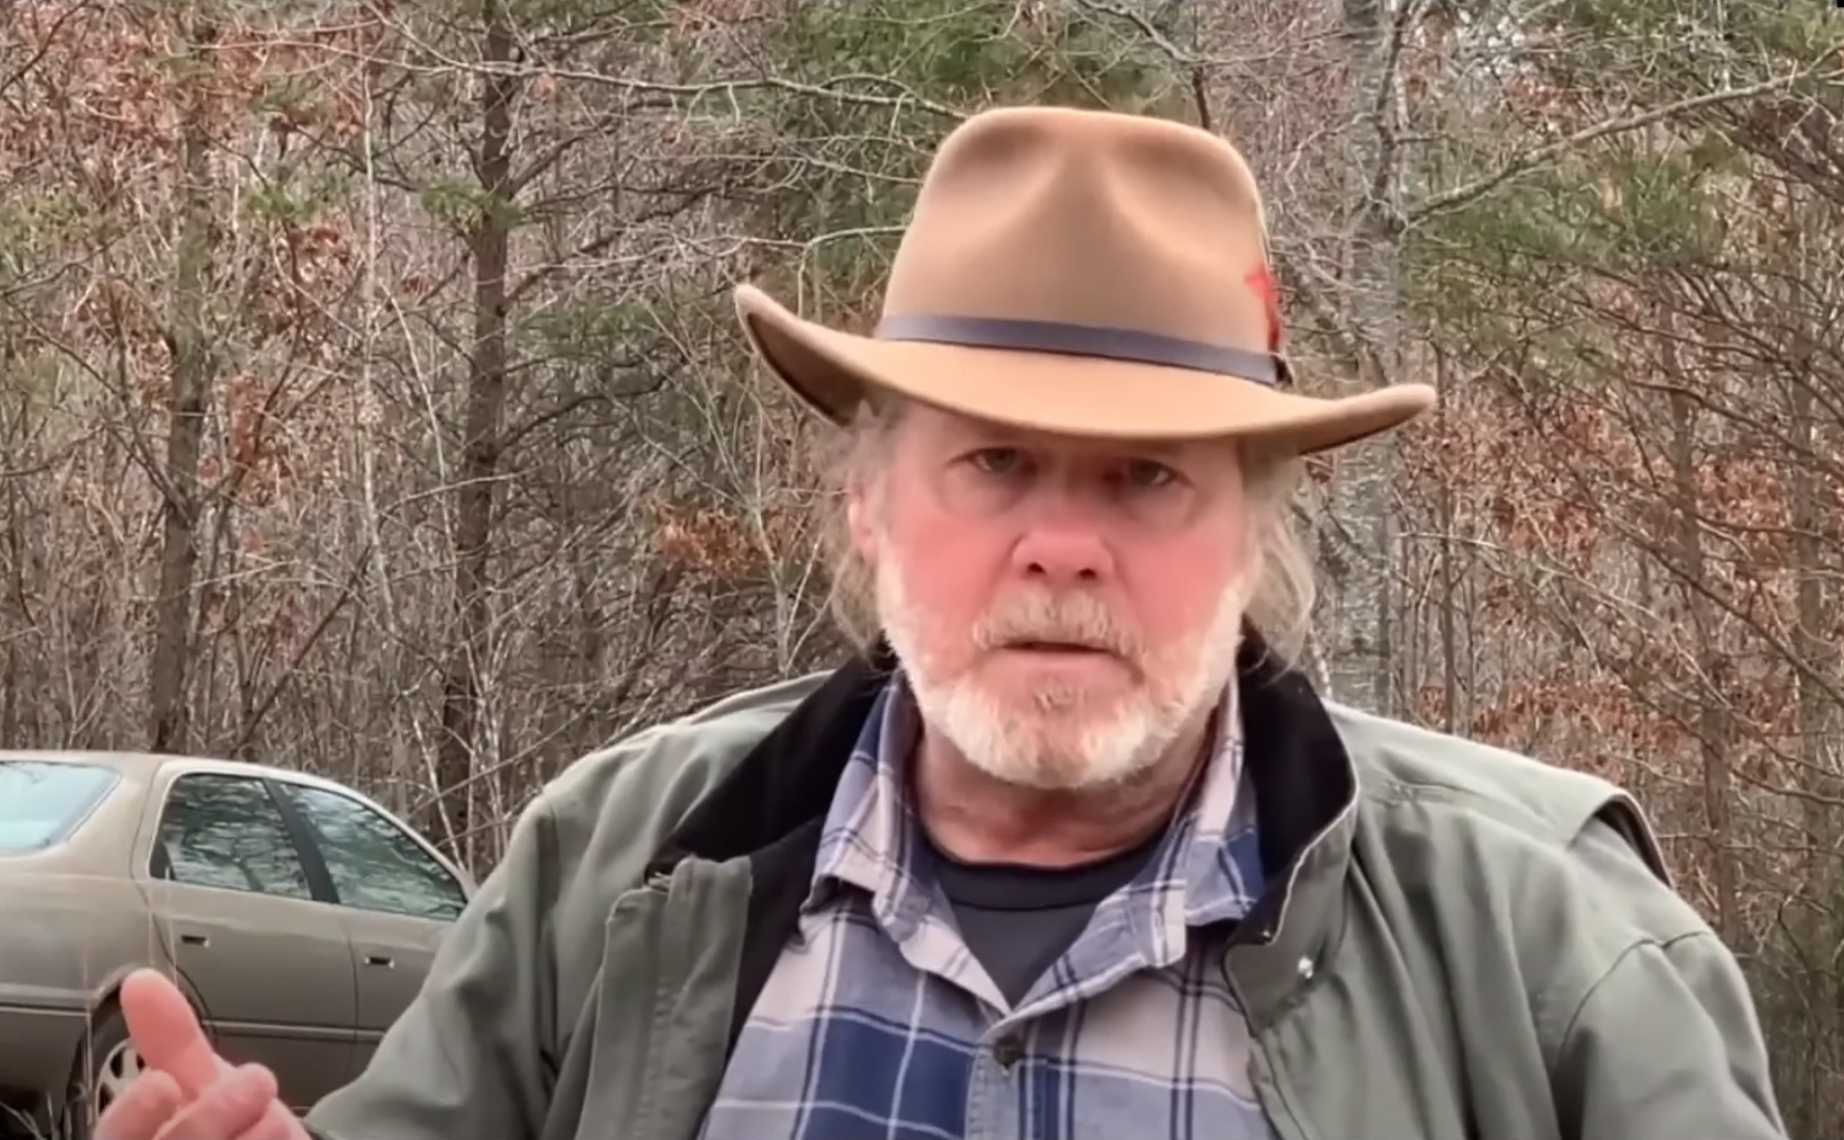 man with beard and hat speaks directly to camera